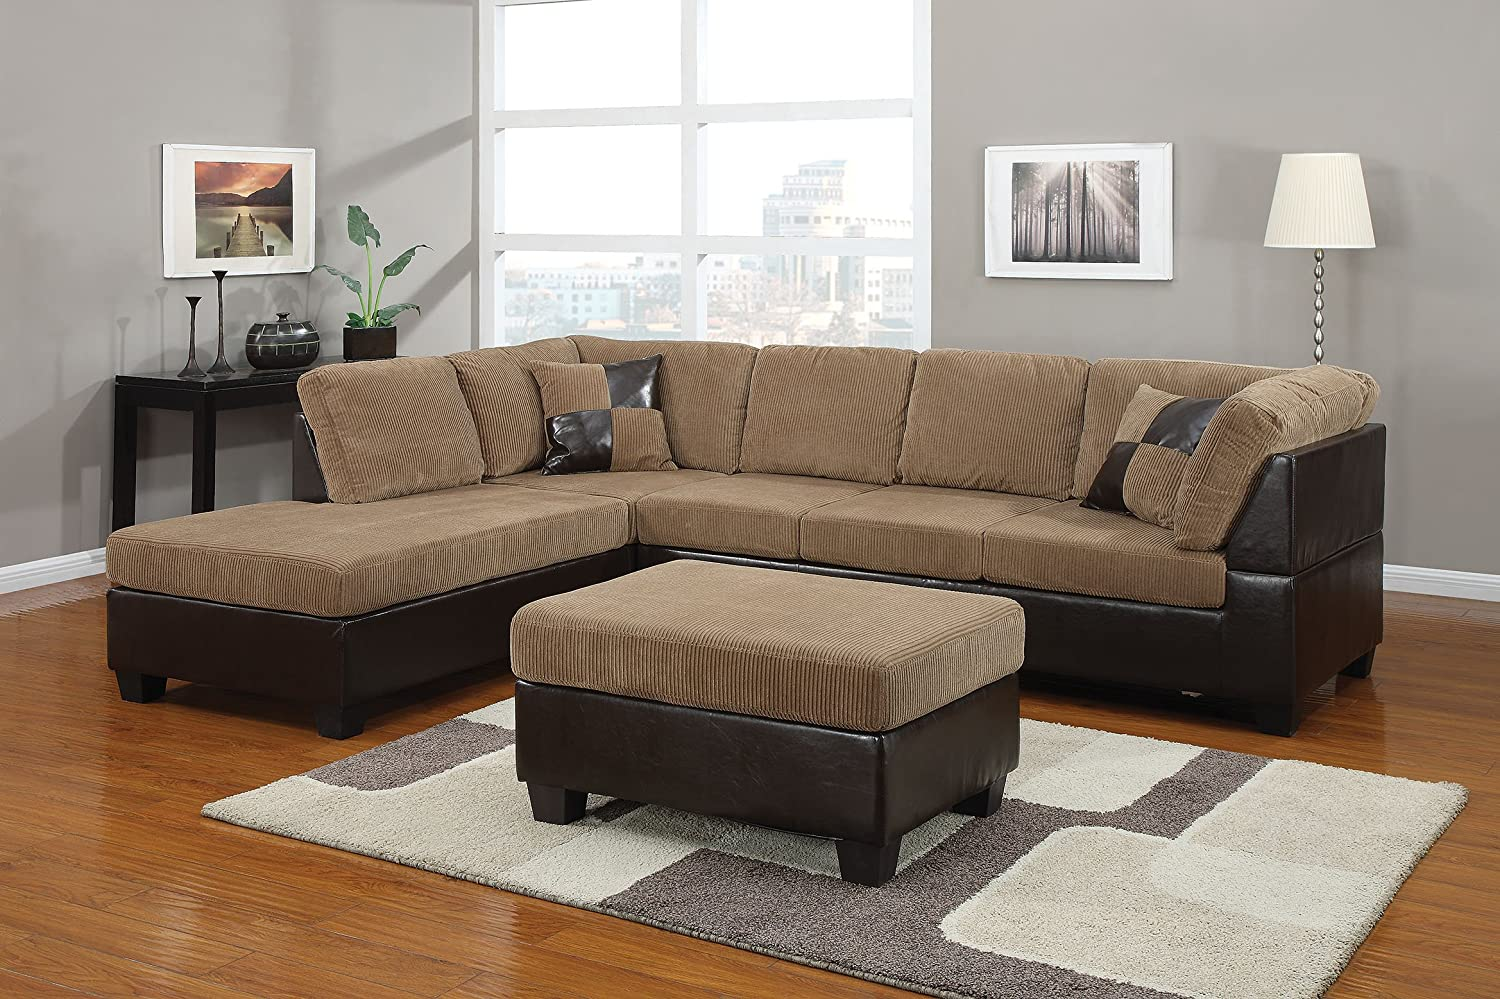 ACME 55945 Connell Sectional Sofa with Pillows, Light Brown Corduroy and  Espresso